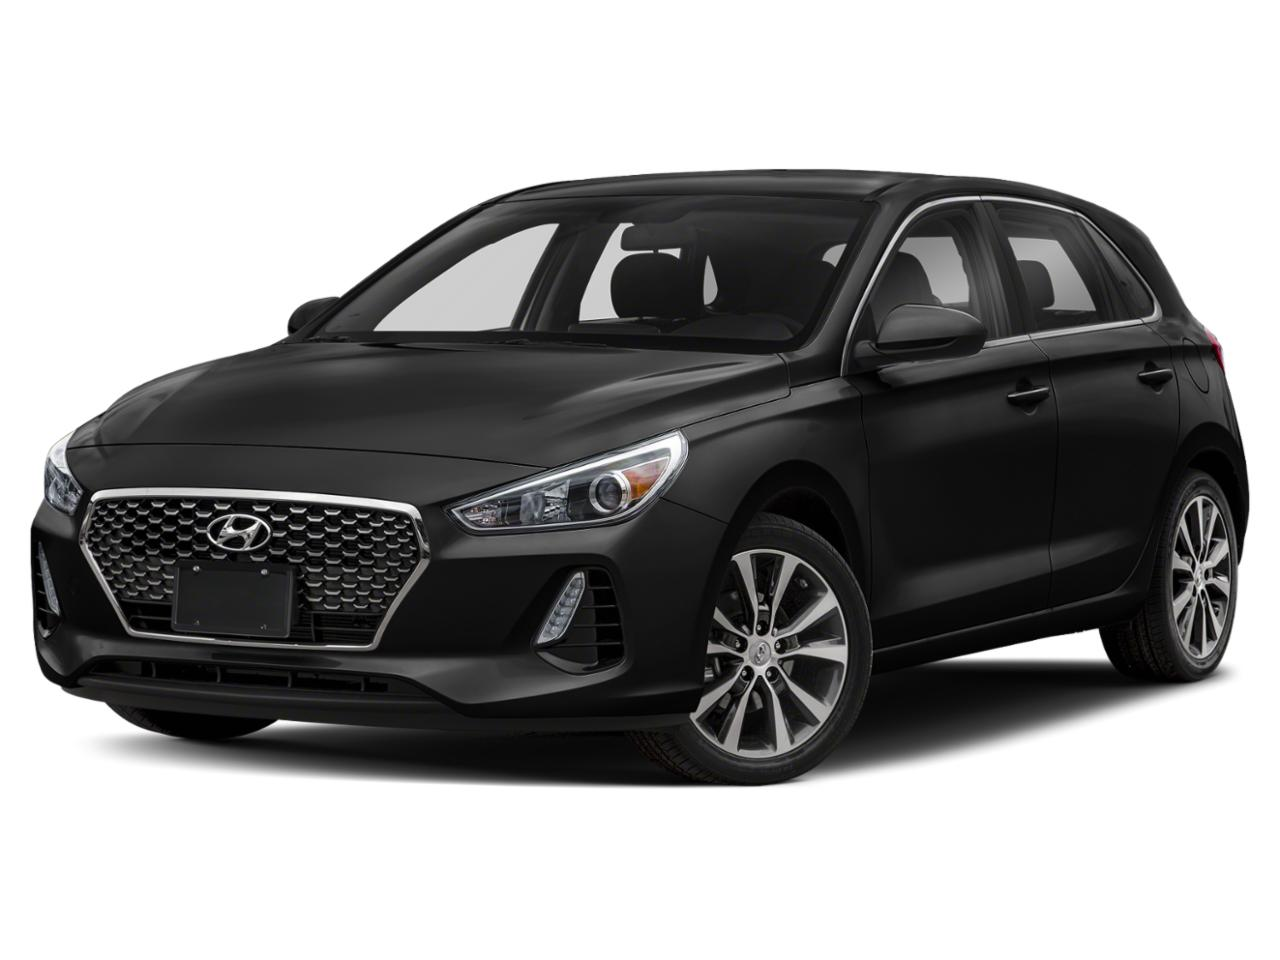 2020 Hyundai Elantra GT Vehicle Photo in Merrillville, IN 46410